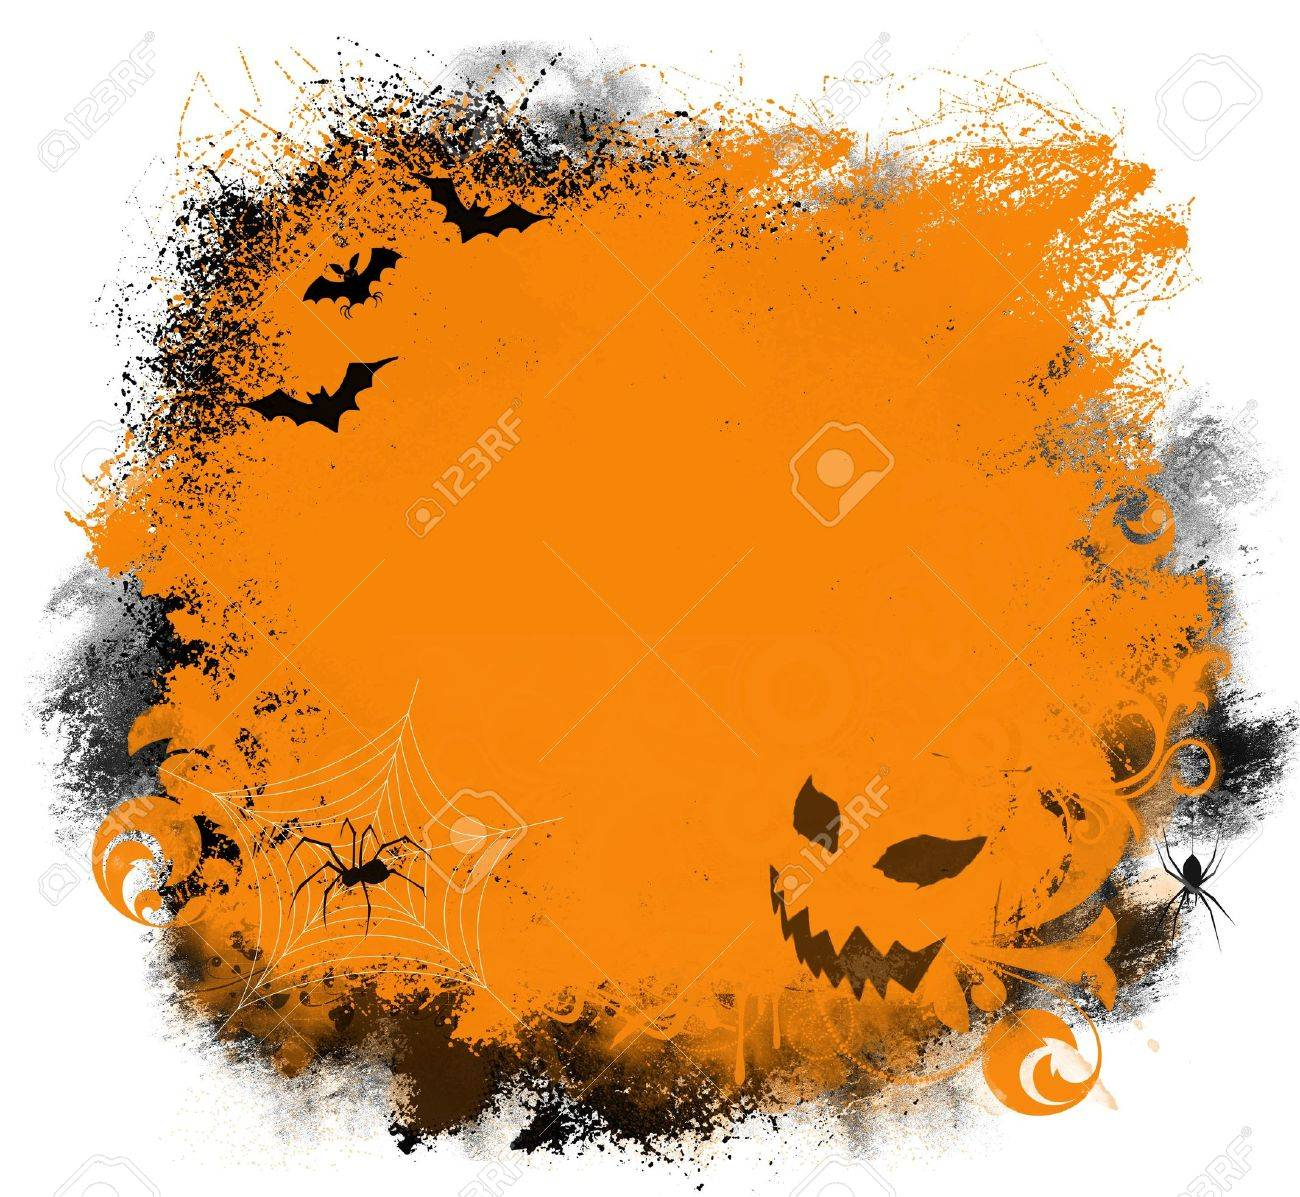 fun halloween background with bats spiders and jack o lantern